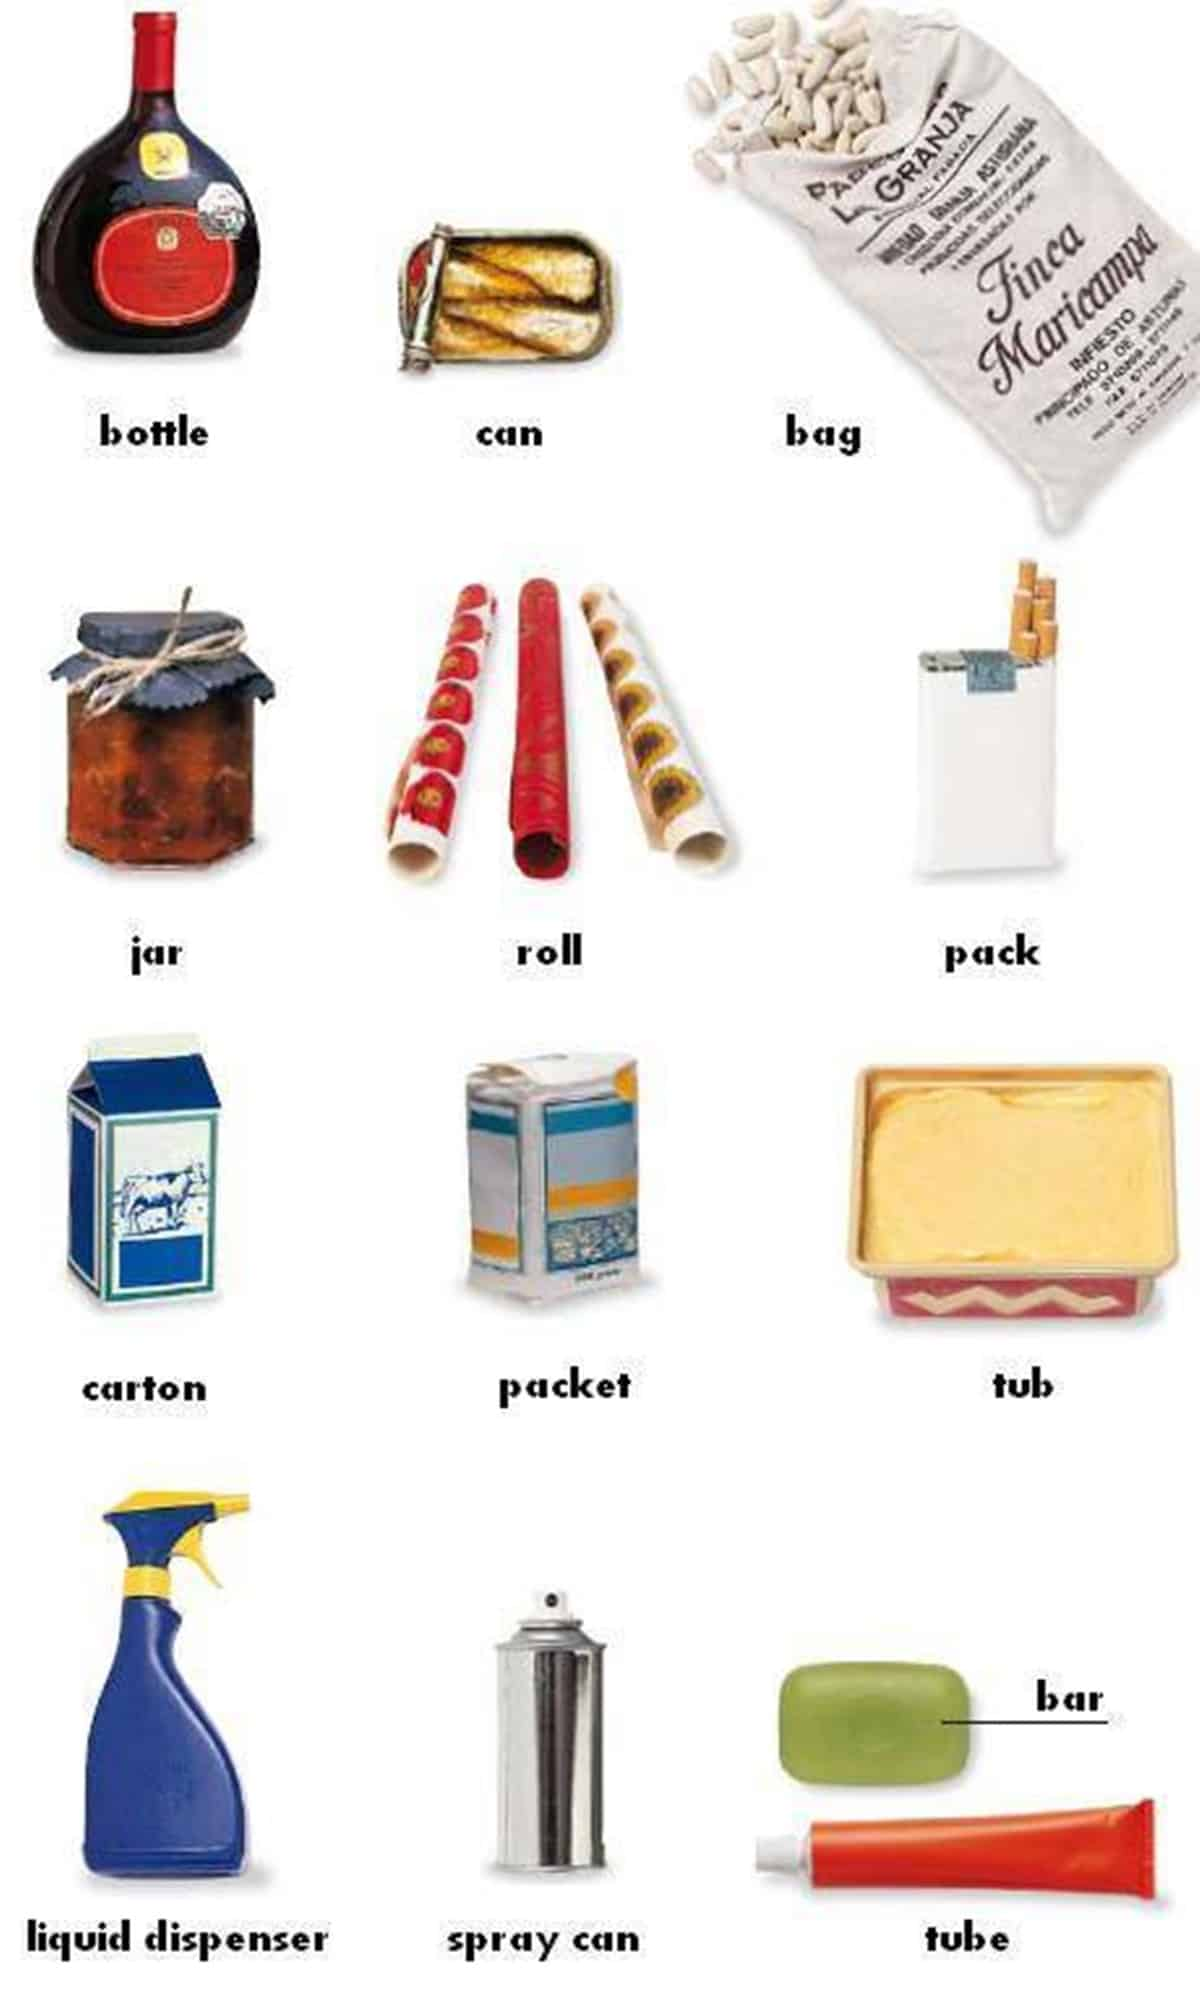 Containers and Packaging Vocabulary in English 3